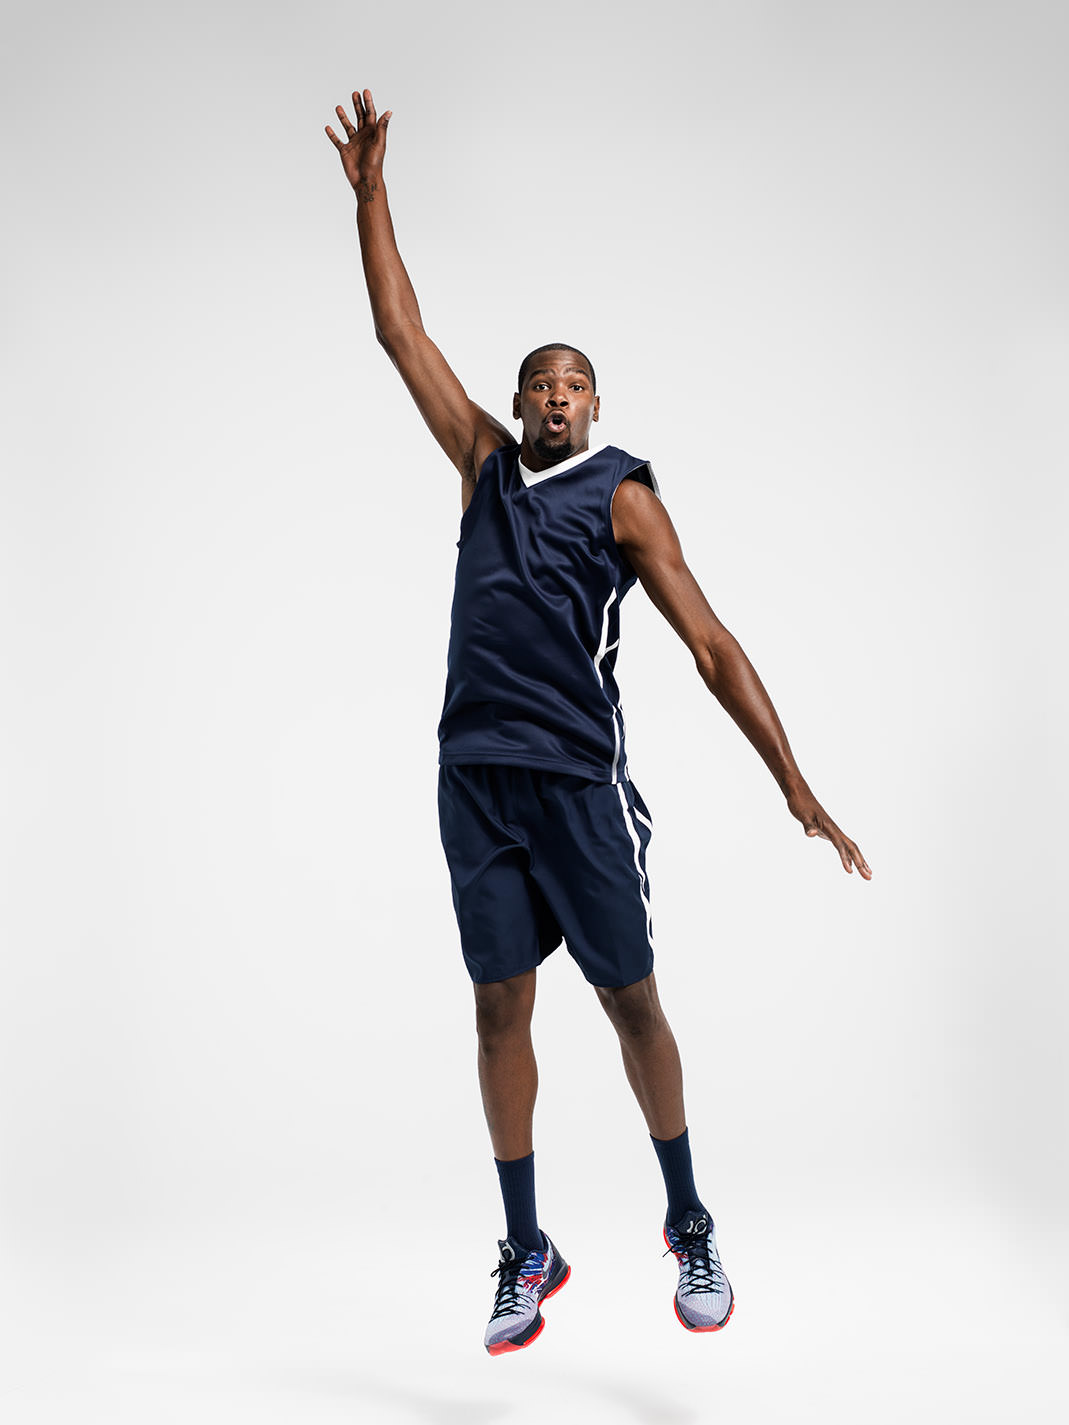 Kevin Durant by photographer John Keatley